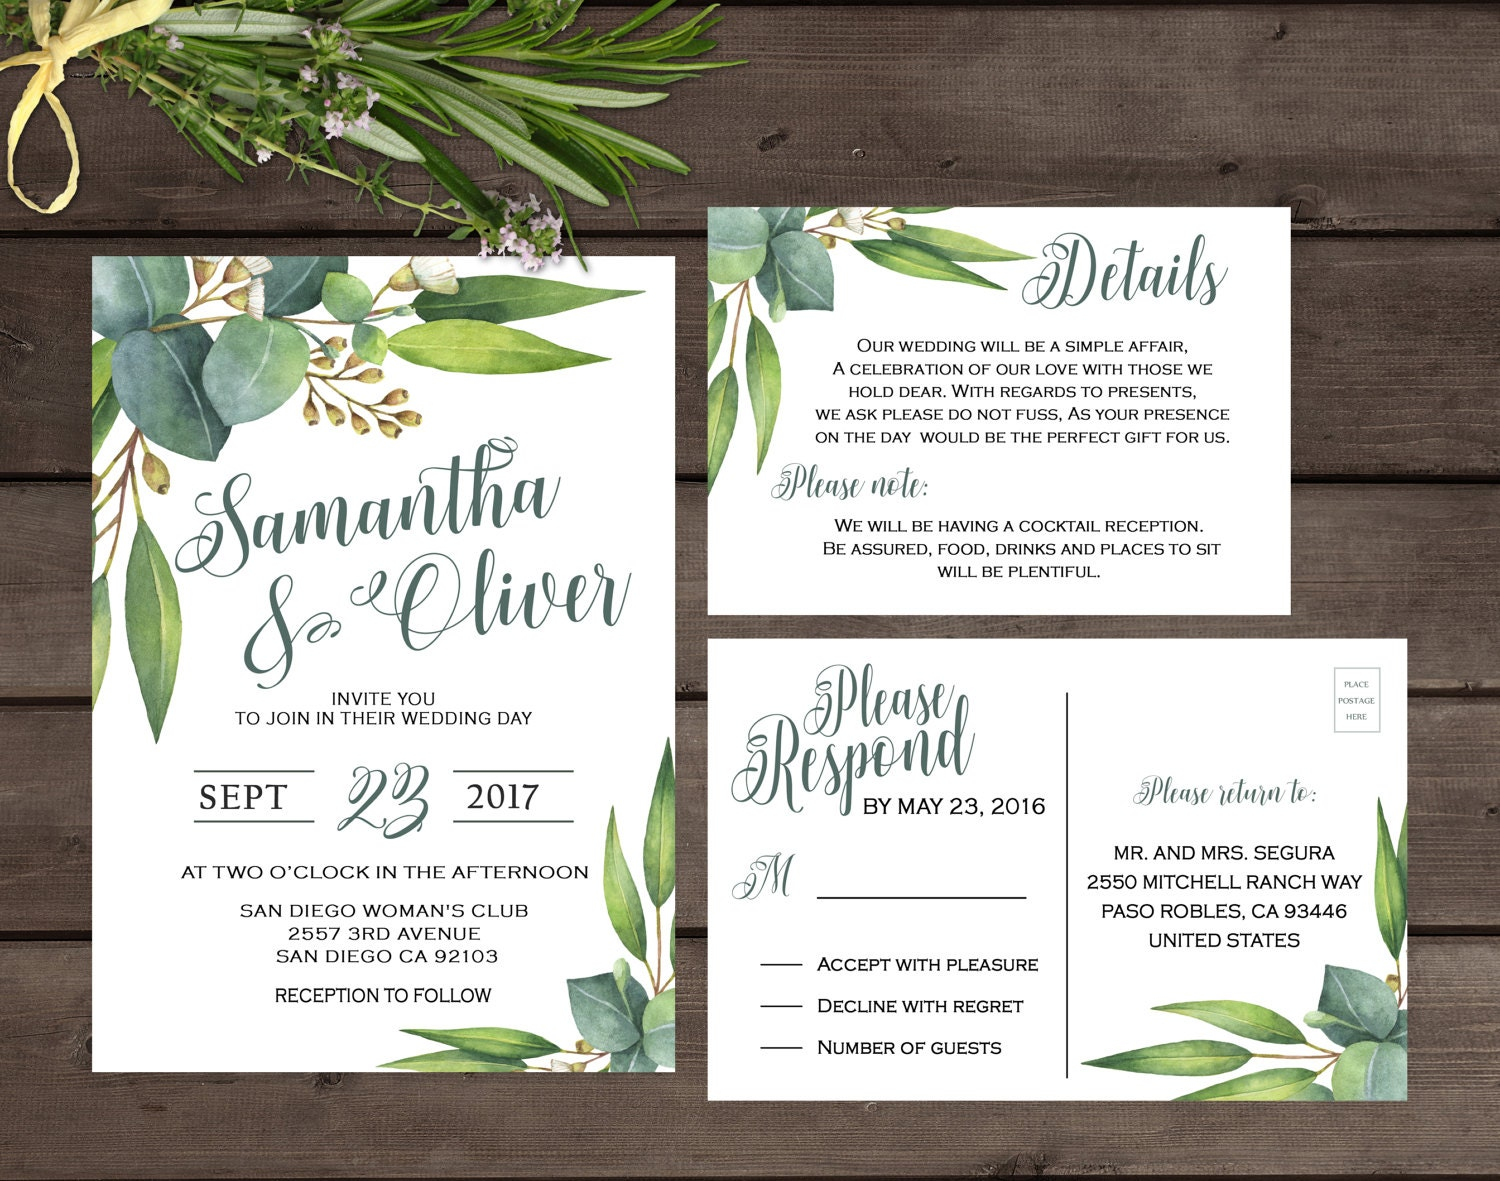 Greenery wedding invitation Eucalyptus wedding invitation